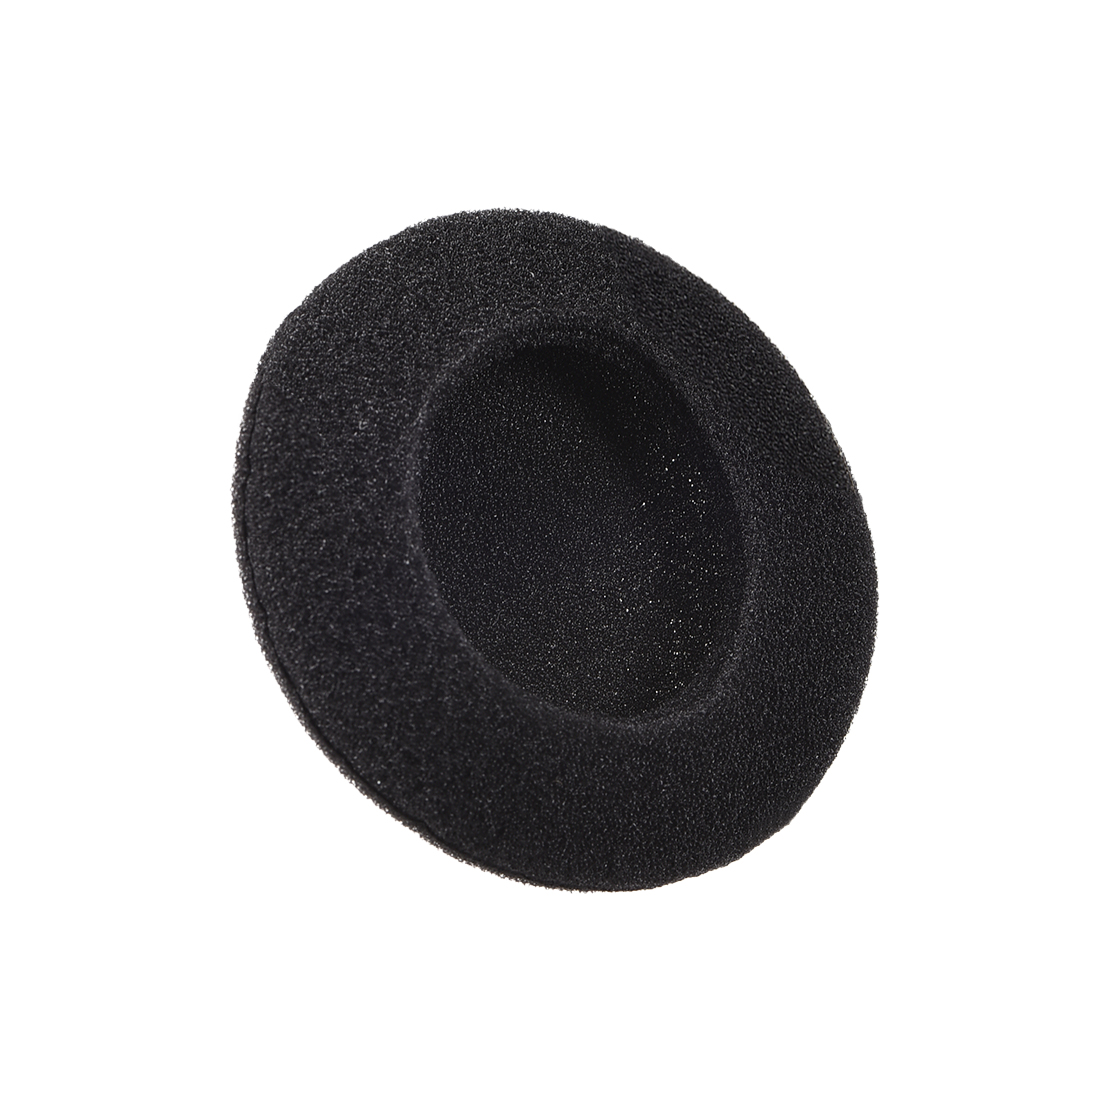 45mm Earphone Foam Ear Pad Sponge Cover For Headphone Headset Black 20pcs